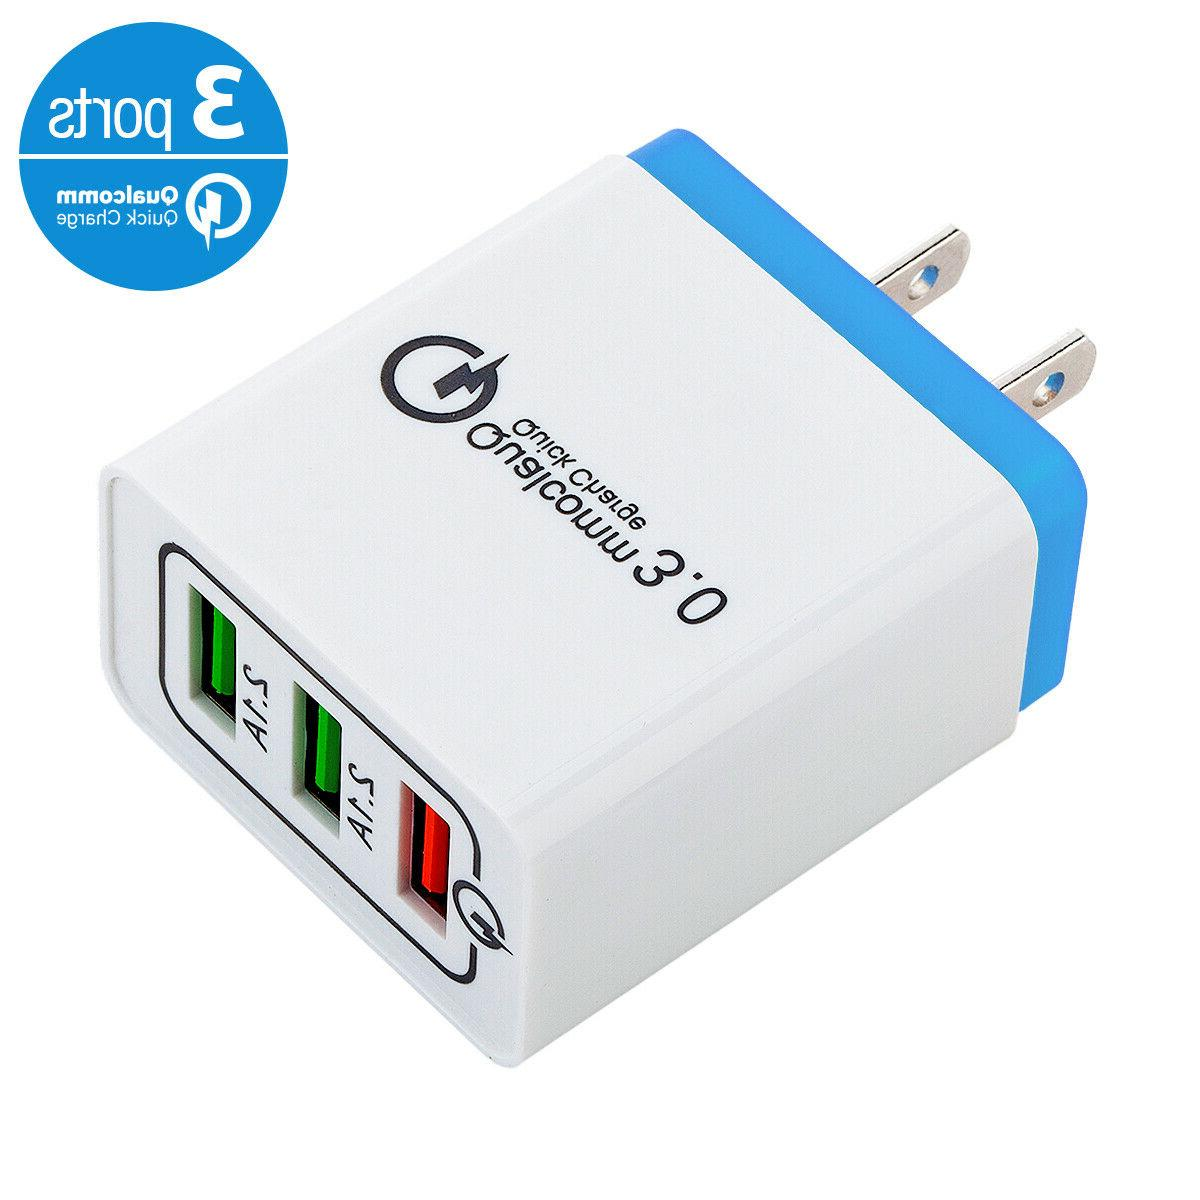 USB Quick Hub Power Adapter iPhone Samsung Android